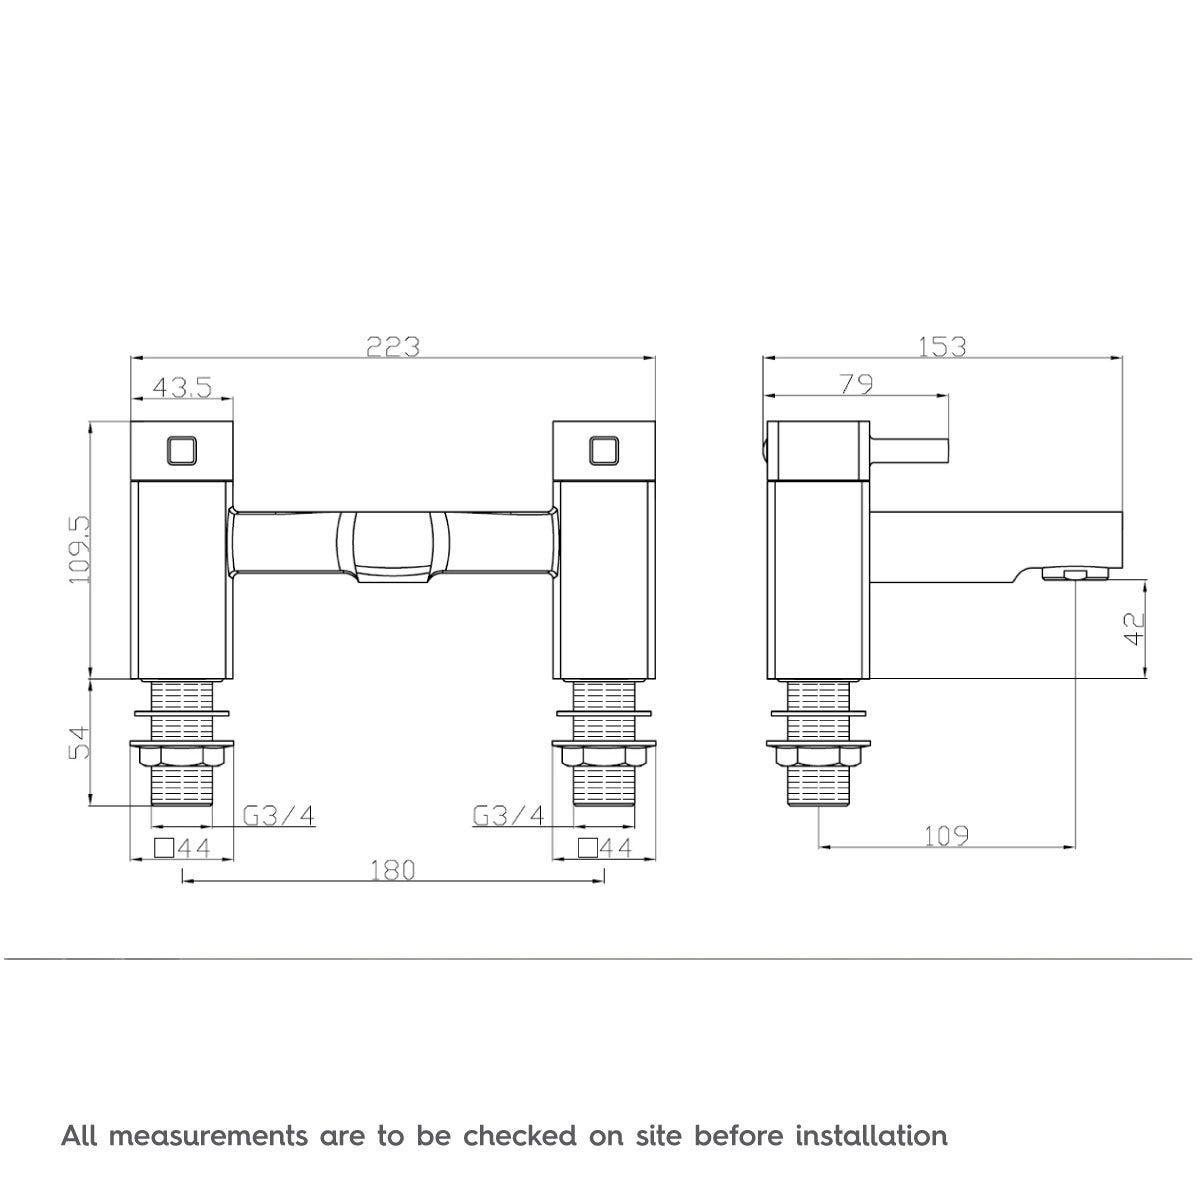 Dimensions for Orchard Derwent bath mixer tap